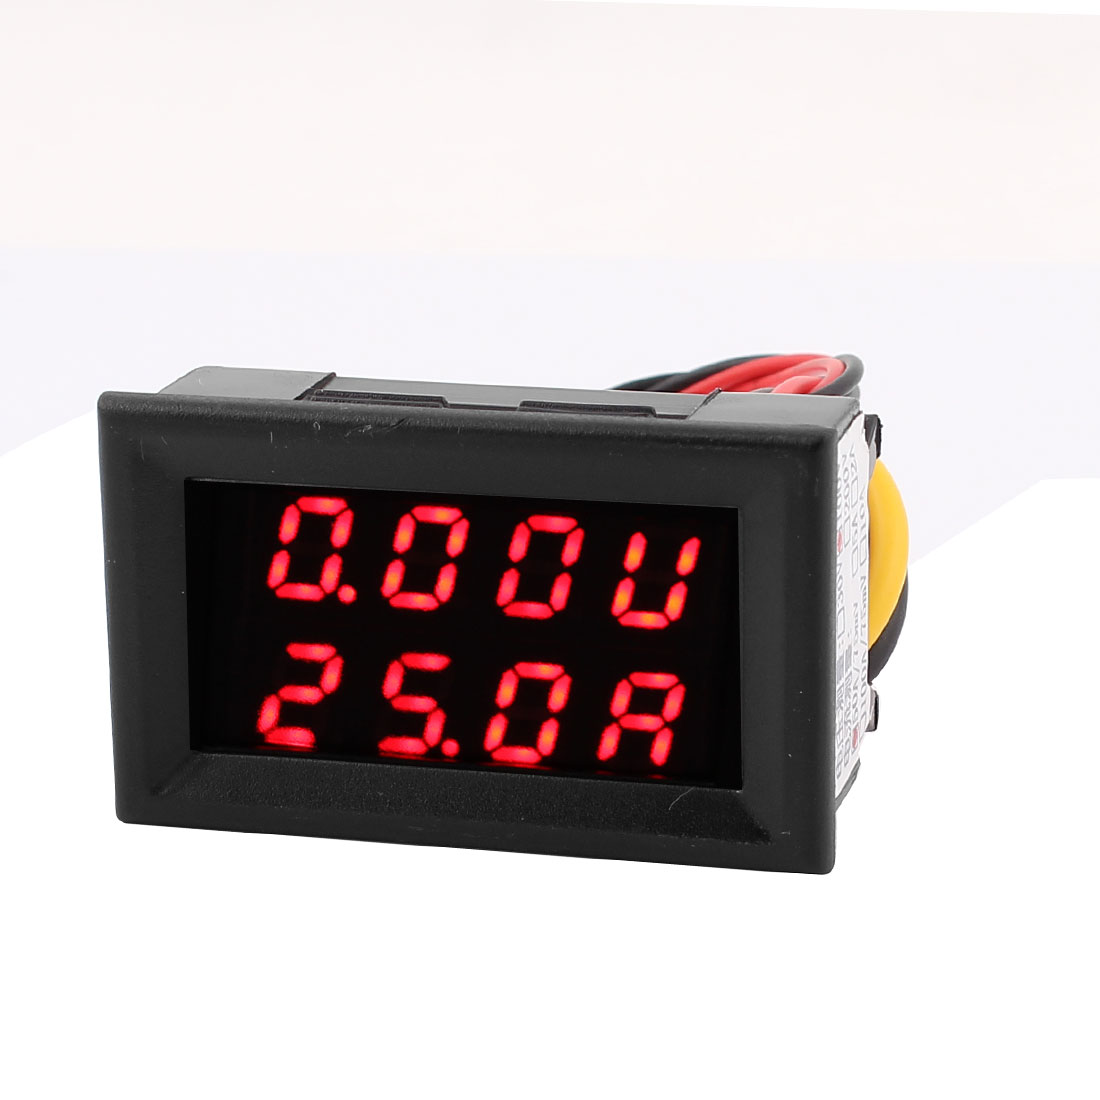 DC 0-100V 0-50A Red LED Dual Digital Display Panel Voltmeter Ammeter Meter